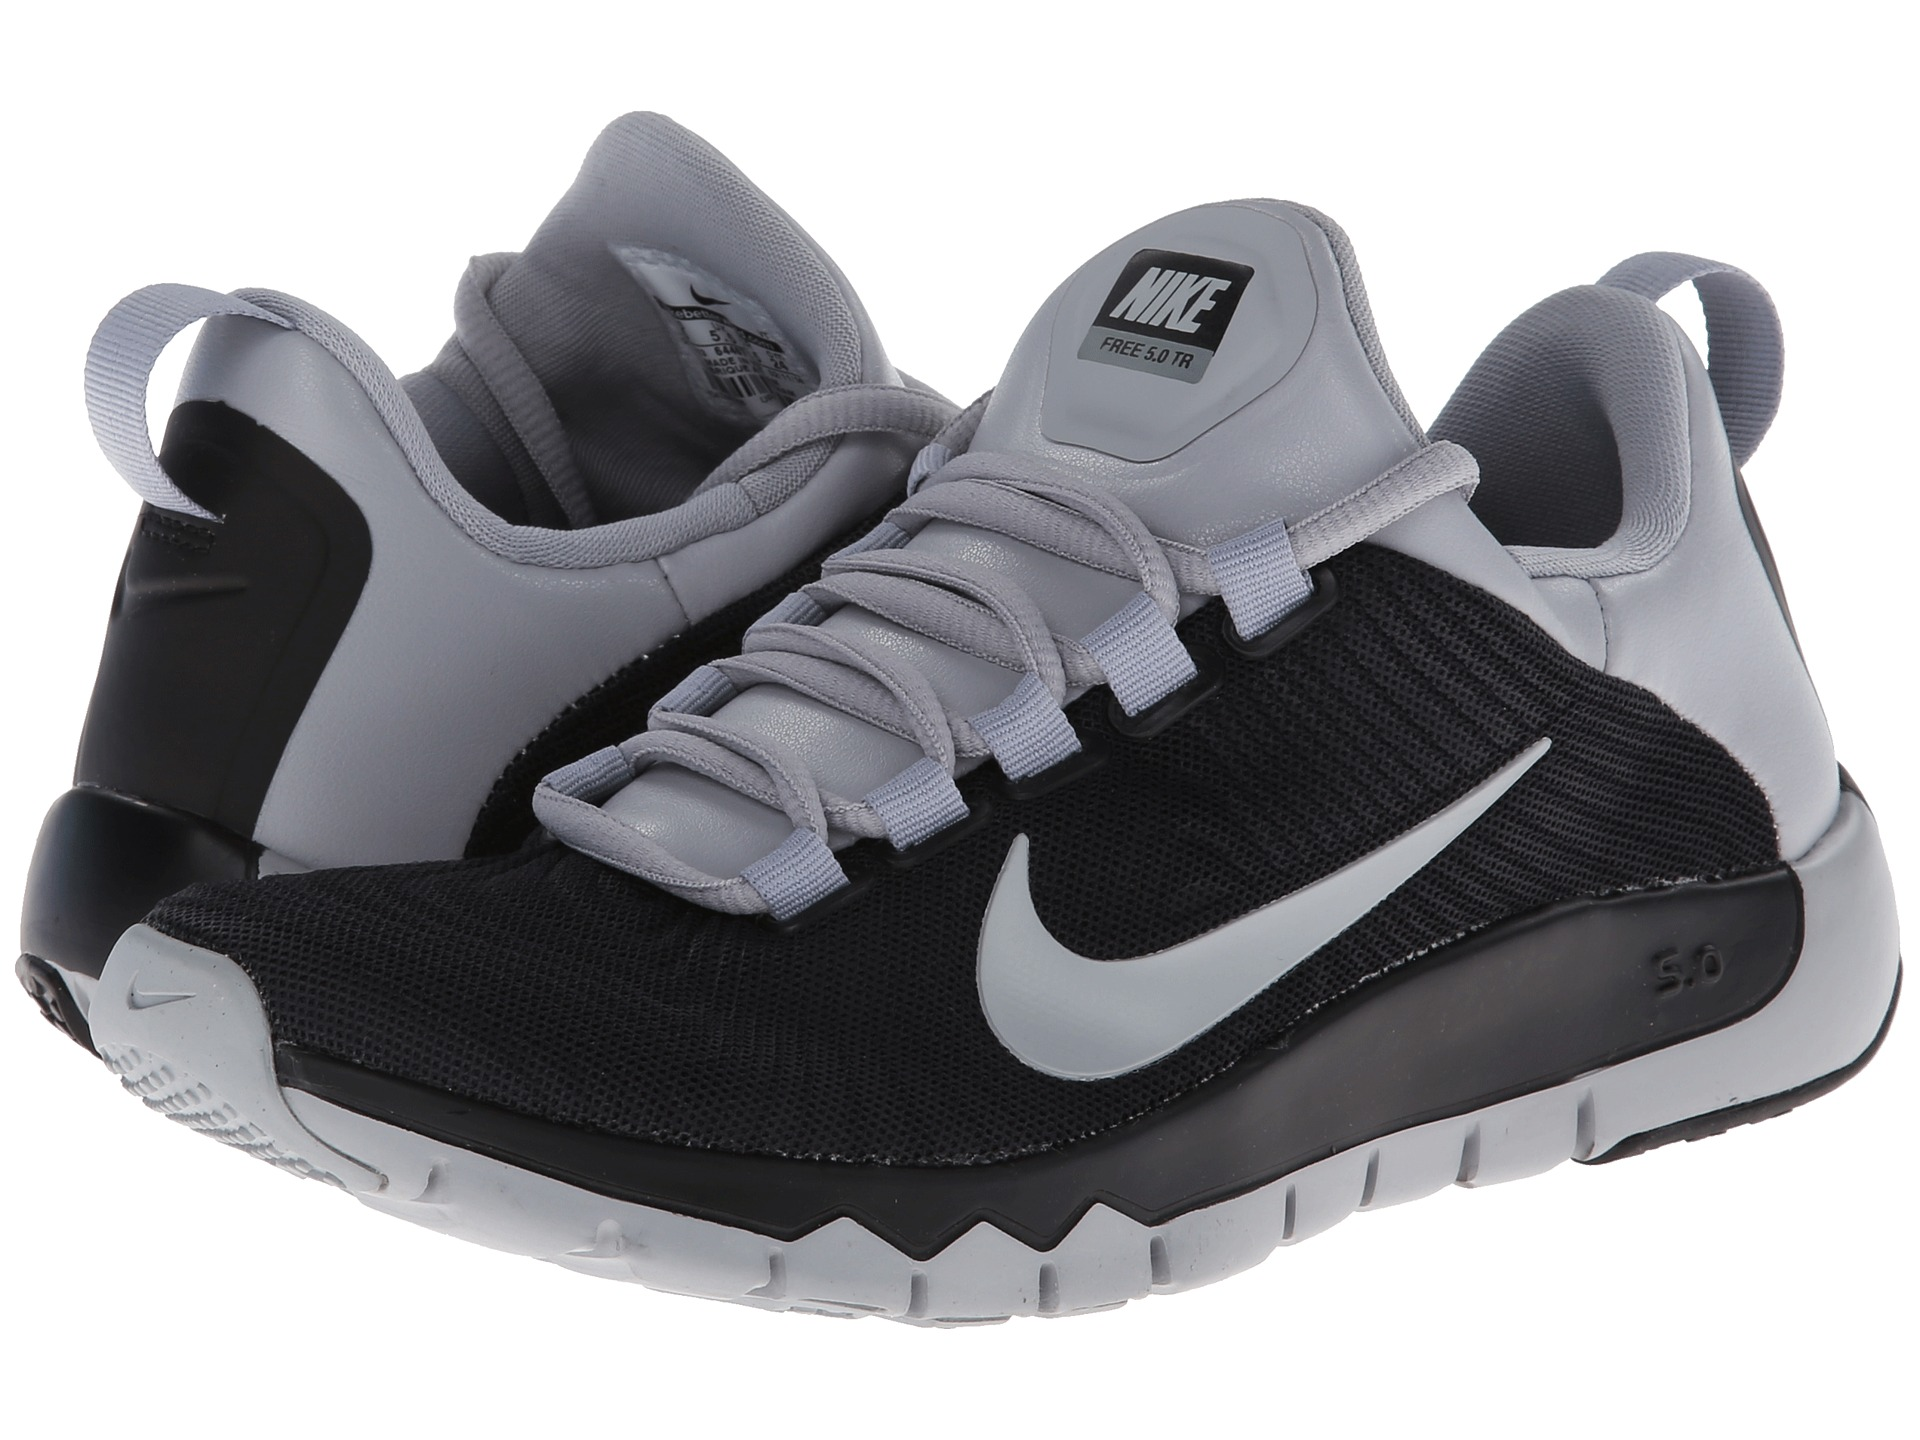 nike free trainer 5 0 shipped free at zappos. Black Bedroom Furniture Sets. Home Design Ideas